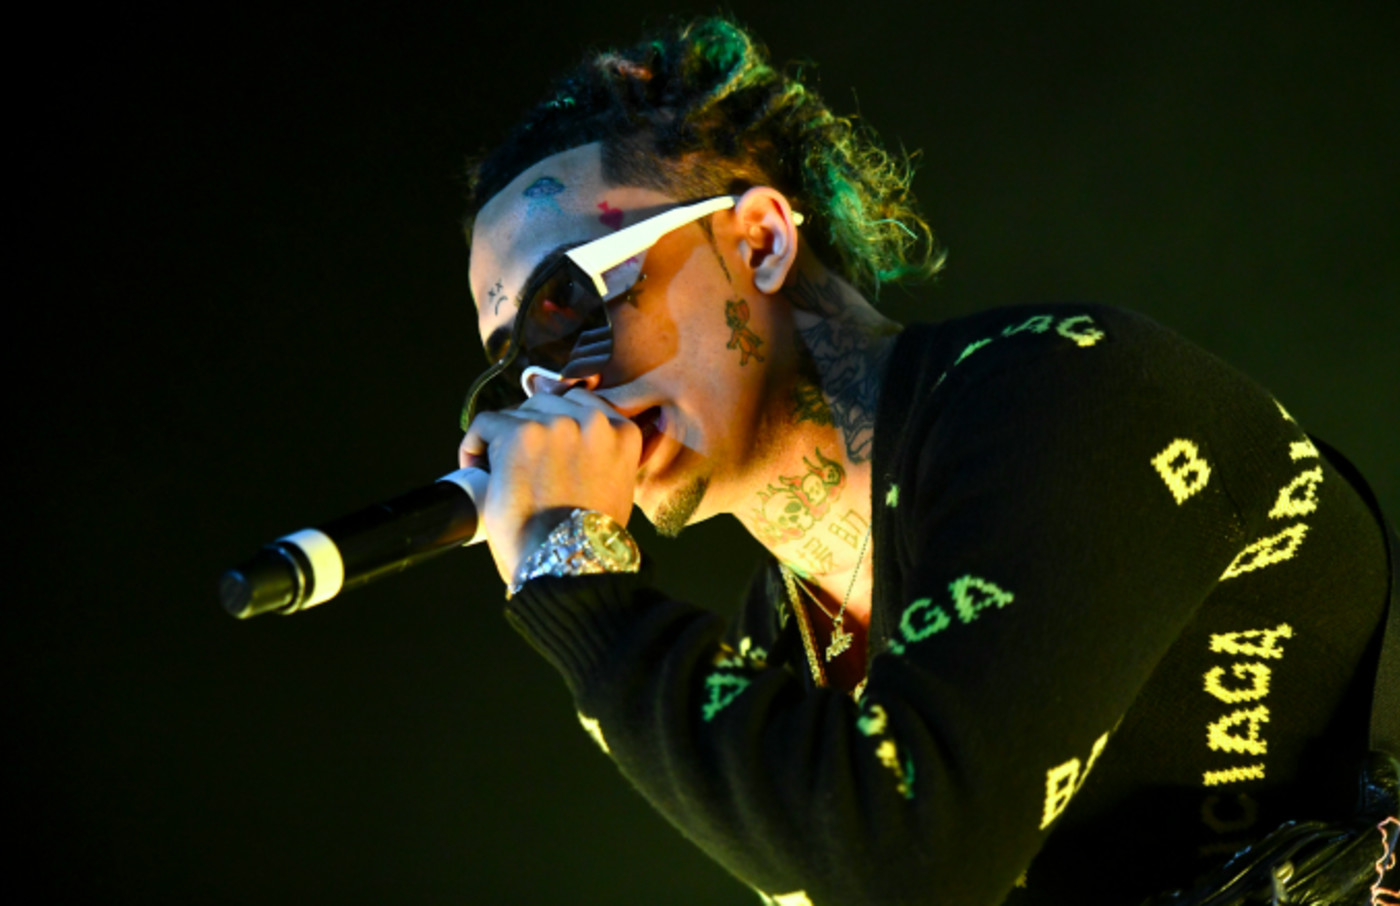 Rapper Lil Pump performs onstage during day 1 of the Rolling Loud Festival